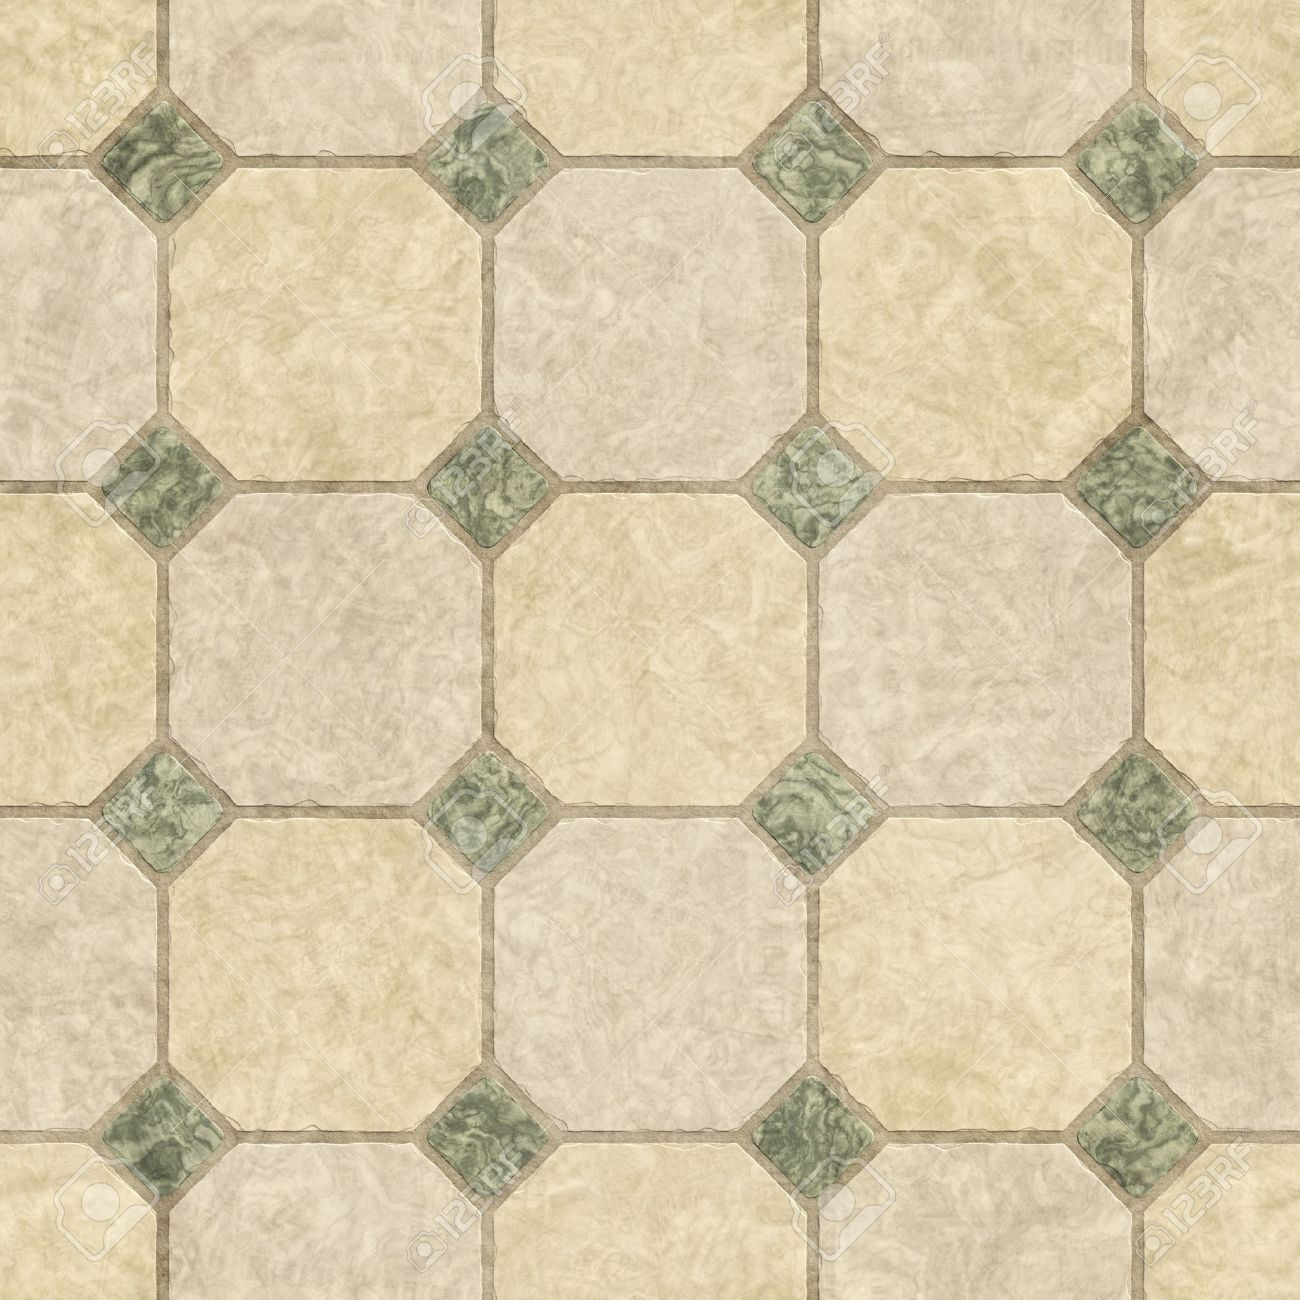 An image of a seamless vintage tiles background stock photo an image of a seamless vintage tiles background stock photo 12035068 dailygadgetfo Images